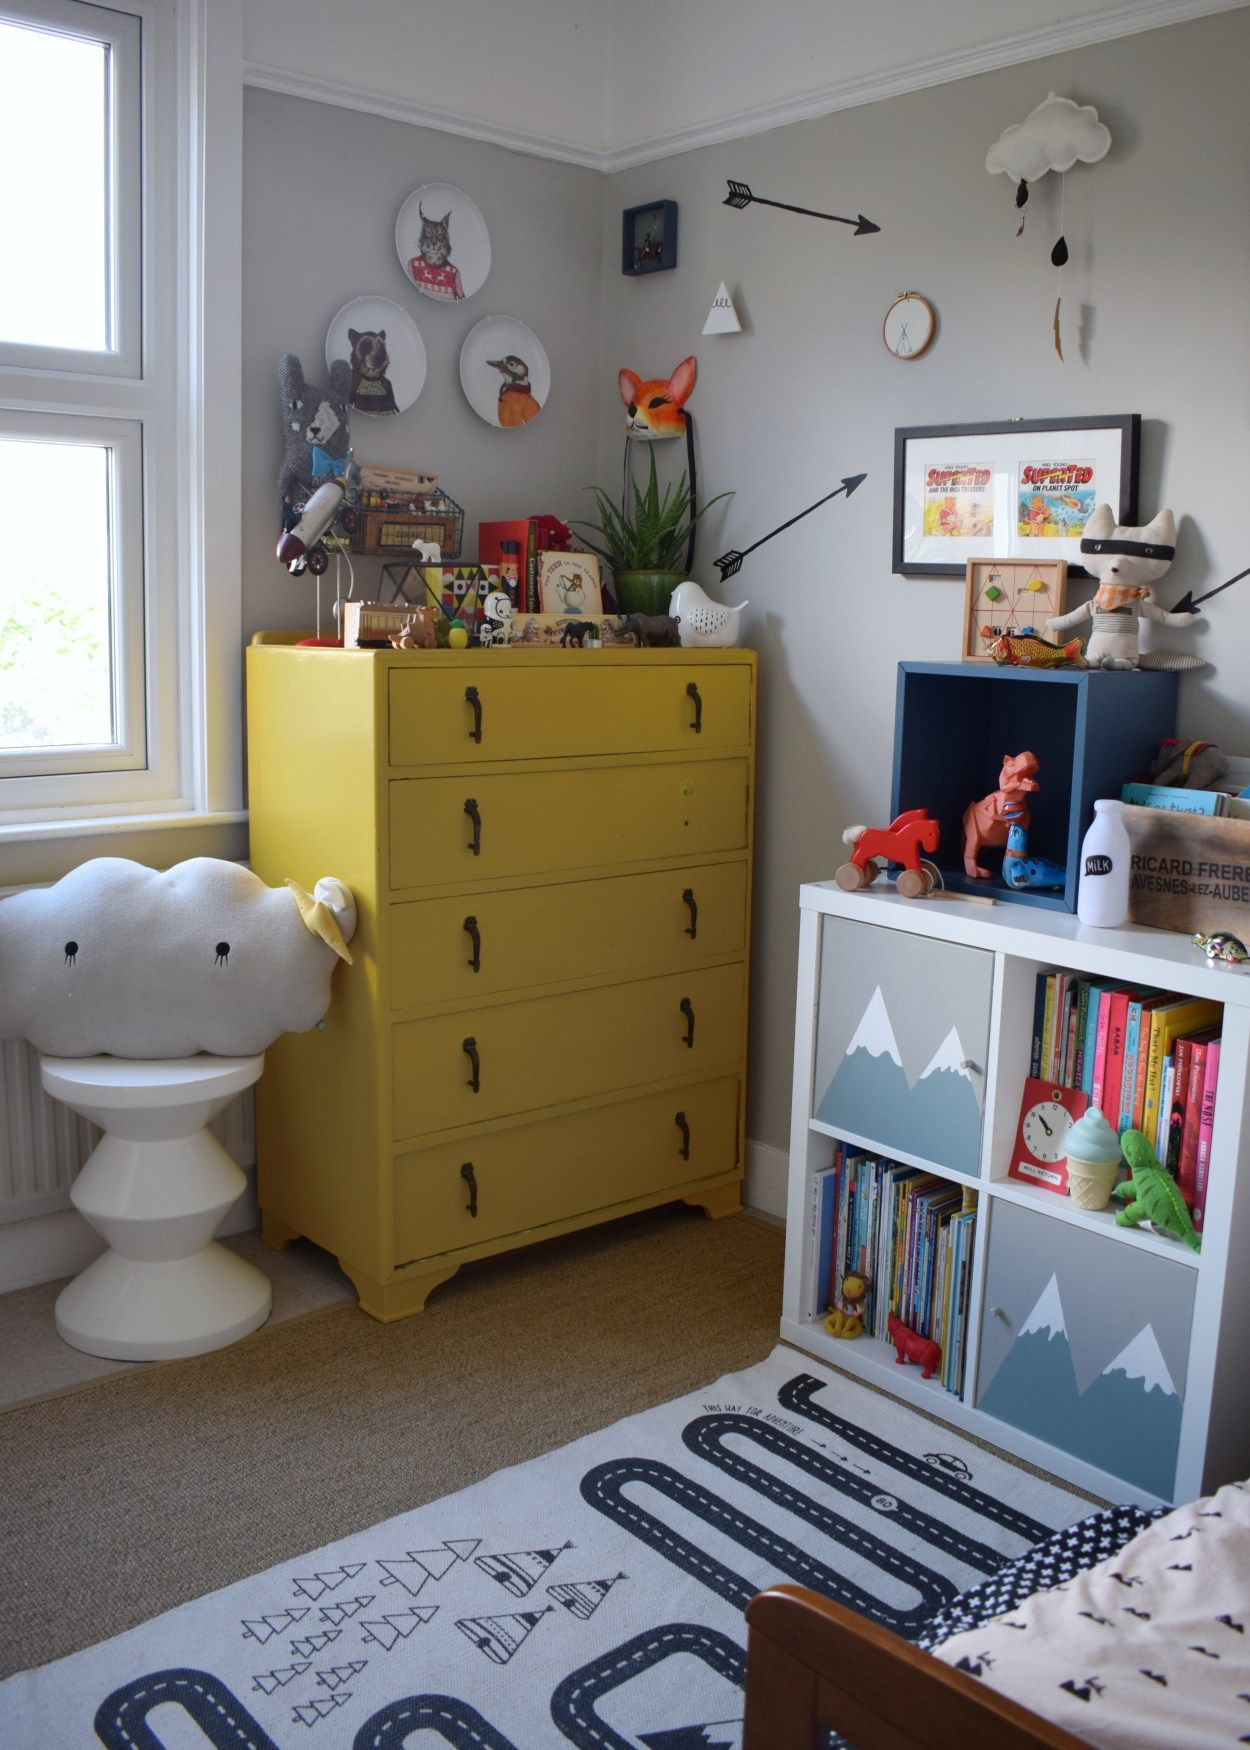 Eclectic Vintage Colourful Kids Space Interior Design Ideas, Kooky Animal